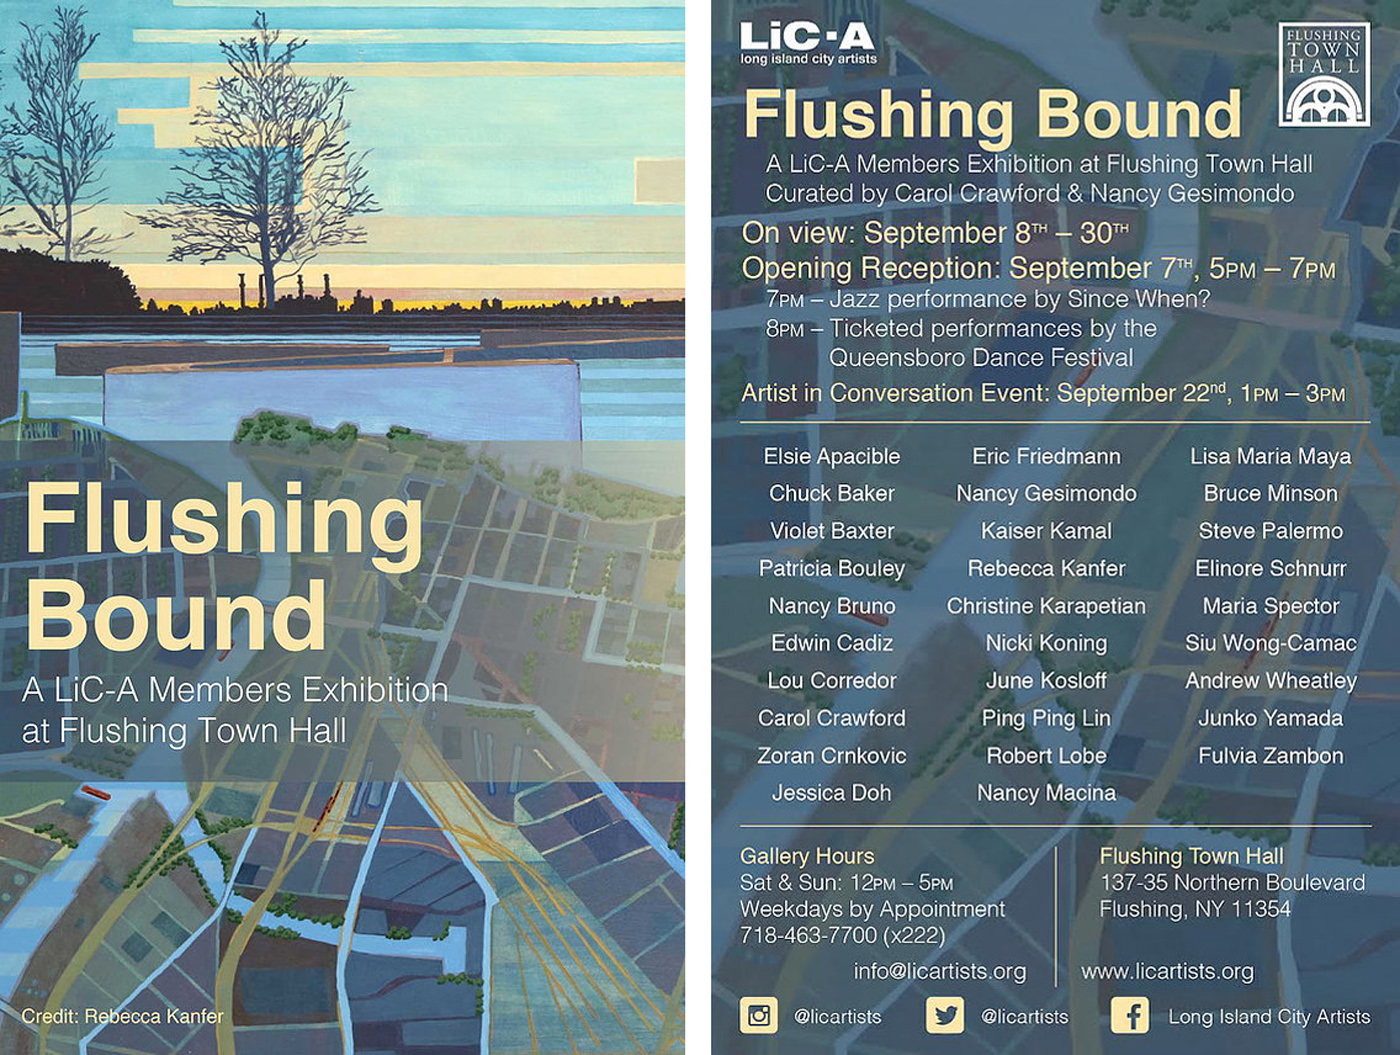 FlushingBound-flyer_sept2018.jpg